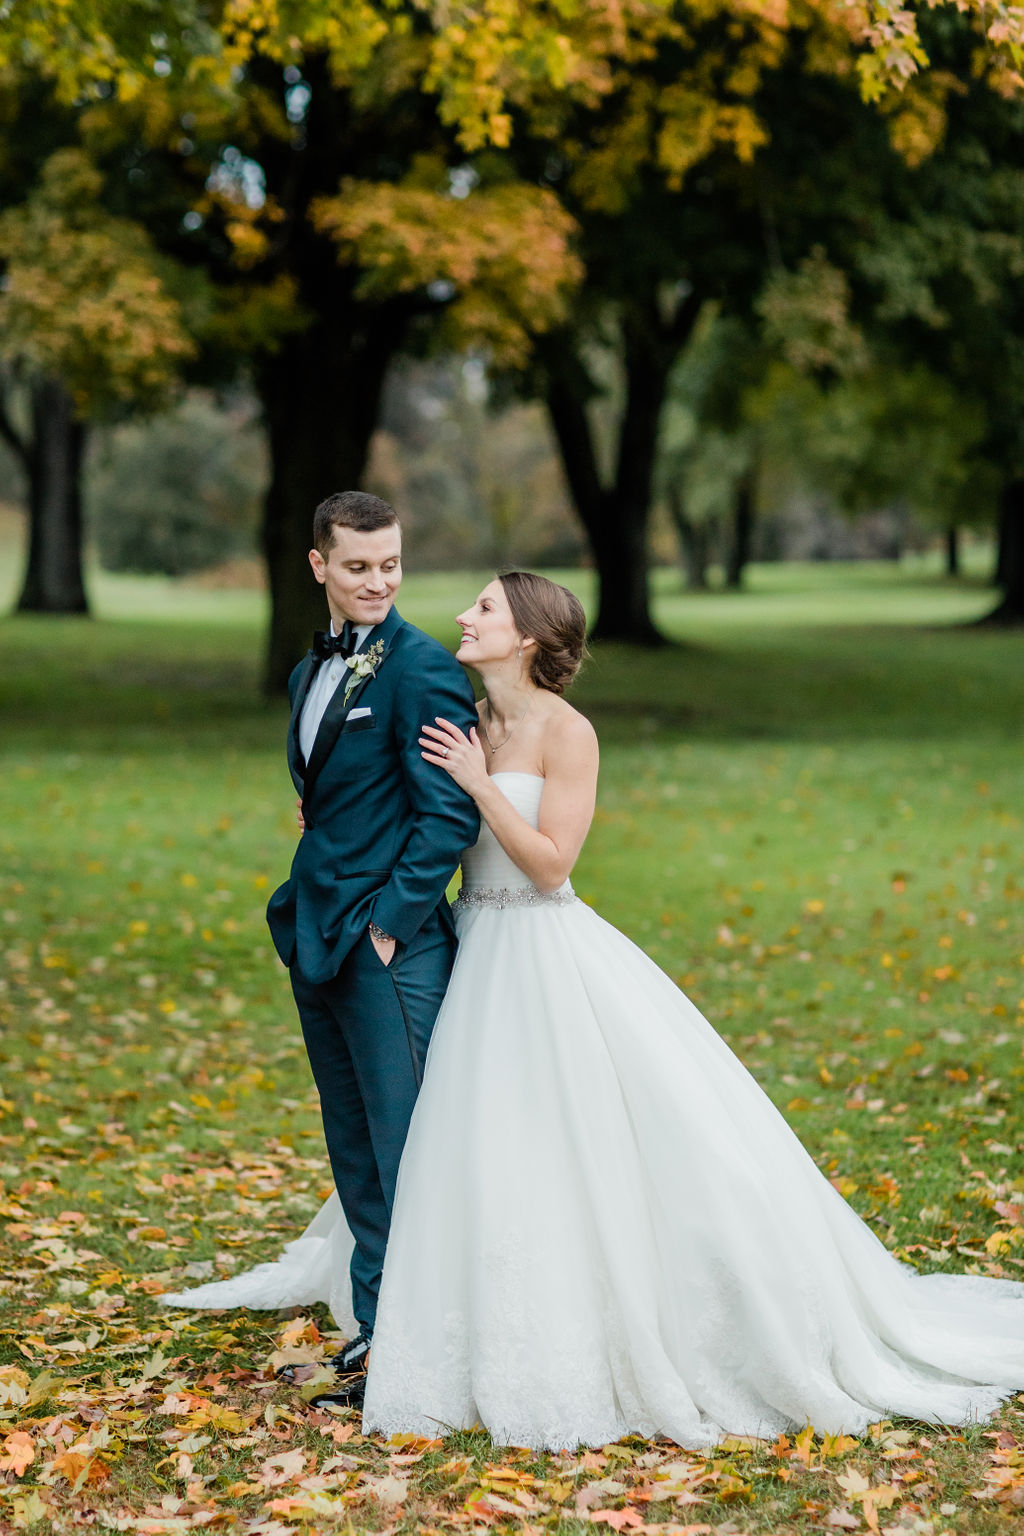 Katie&Brian_Wedding__JenHarveyPhotography-690.jpg